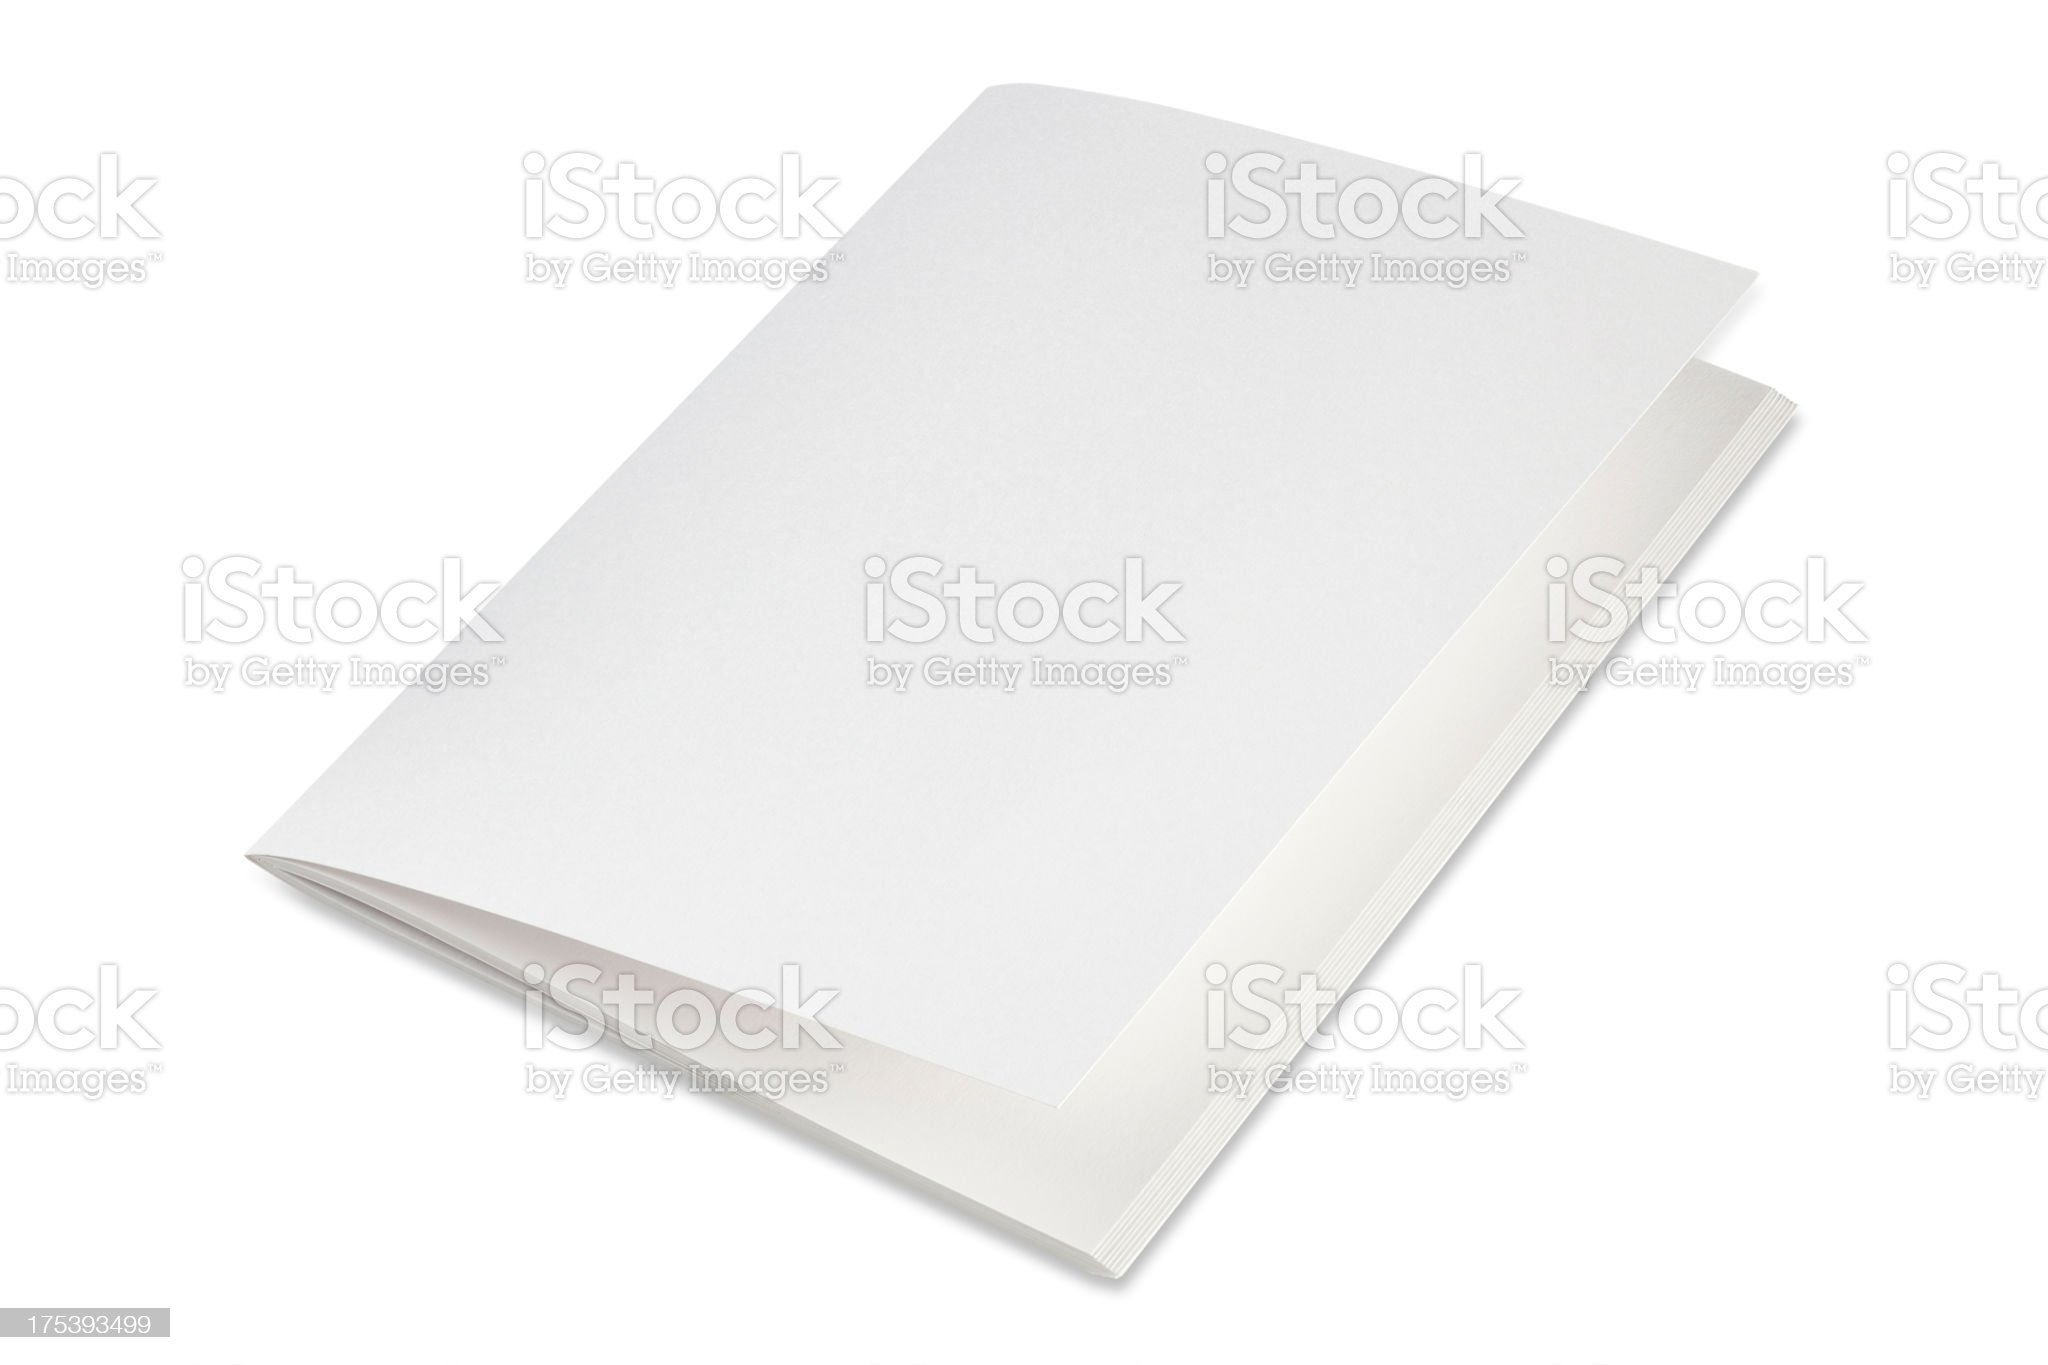 Blank folded brochure on a white background royalty-free stock photo